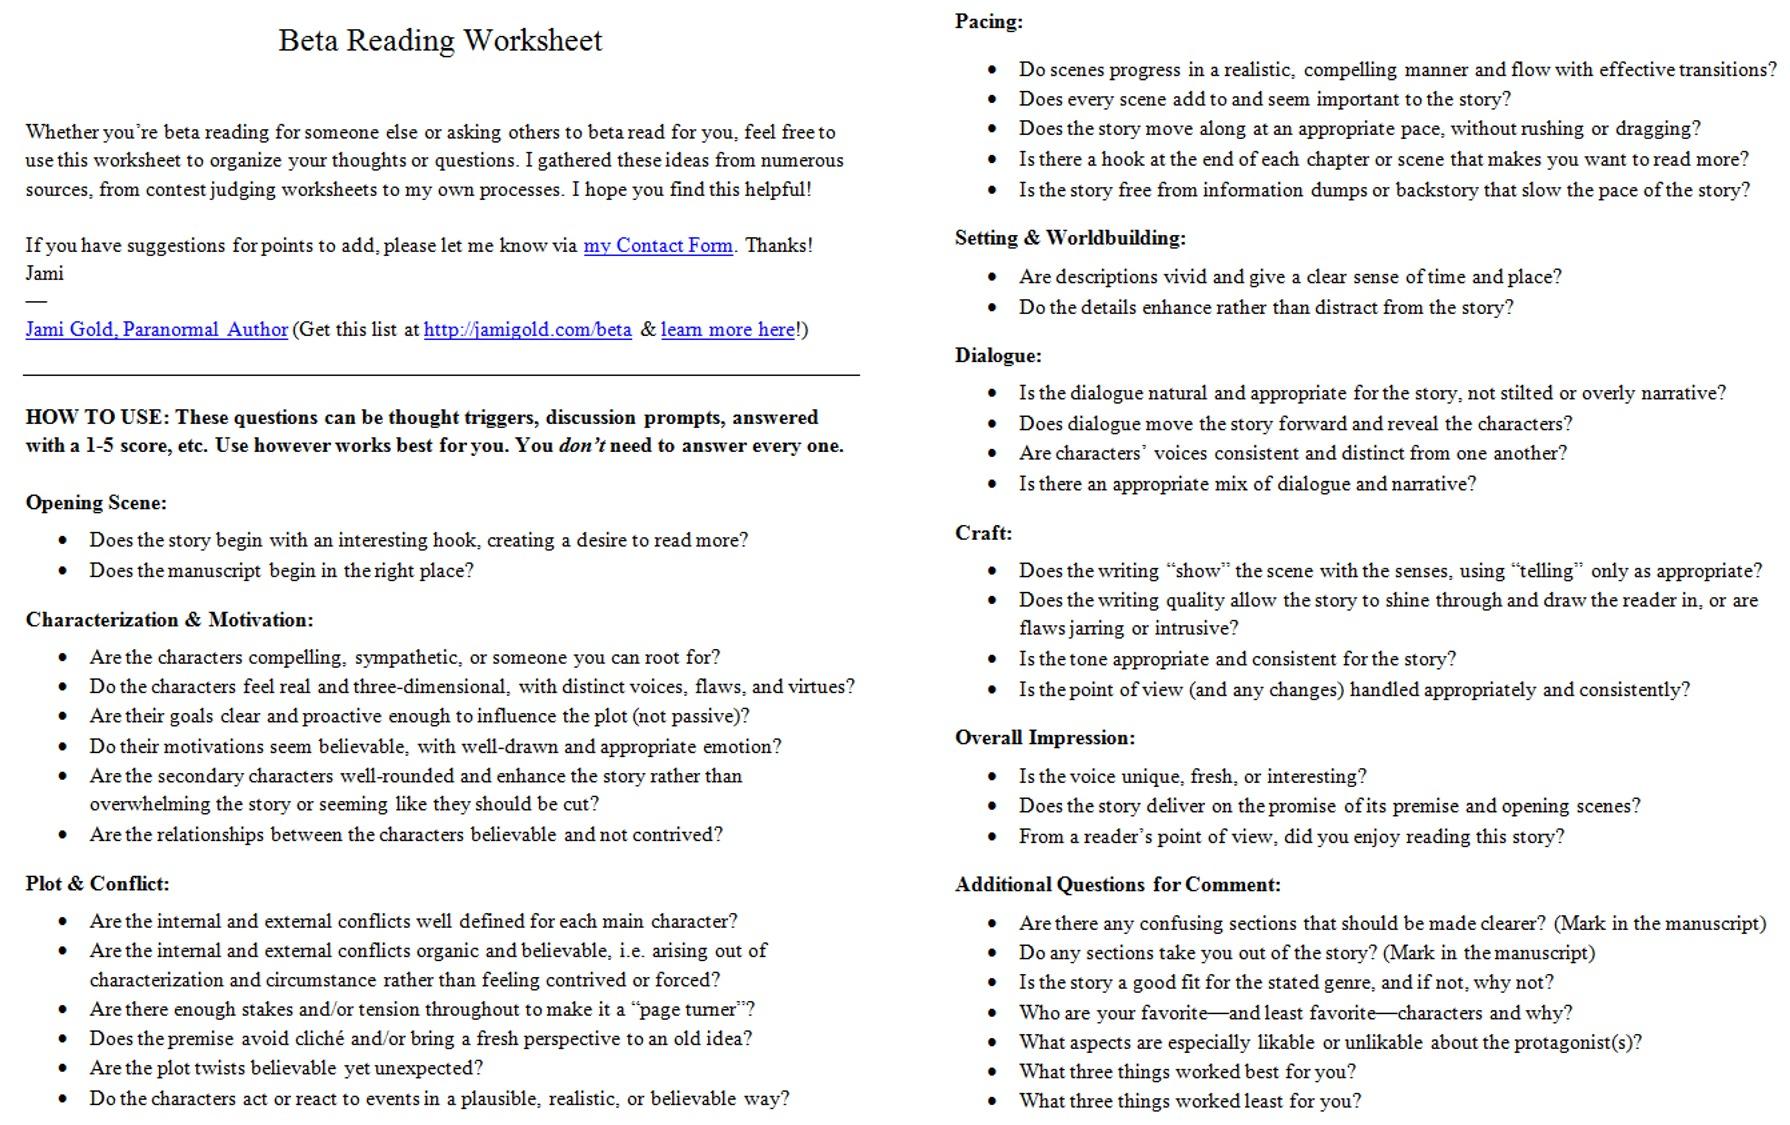 Weirdmailus  Seductive Worksheets For Writers  Jami Gold Paranormal Author With Glamorous Screen Shot Of The Twopage Beta Reading Worksheet With Comely Algebra Solving Equations Worksheet Also Preschool Social Studies Worksheets In Addition Analog Time Worksheets And Printable Anatomy Worksheets As Well As Life Cycles Worksheets Additionally Missing Number Addition And Subtraction Worksheets From Jamigoldcom With Weirdmailus  Glamorous Worksheets For Writers  Jami Gold Paranormal Author With Comely Screen Shot Of The Twopage Beta Reading Worksheet And Seductive Algebra Solving Equations Worksheet Also Preschool Social Studies Worksheets In Addition Analog Time Worksheets From Jamigoldcom